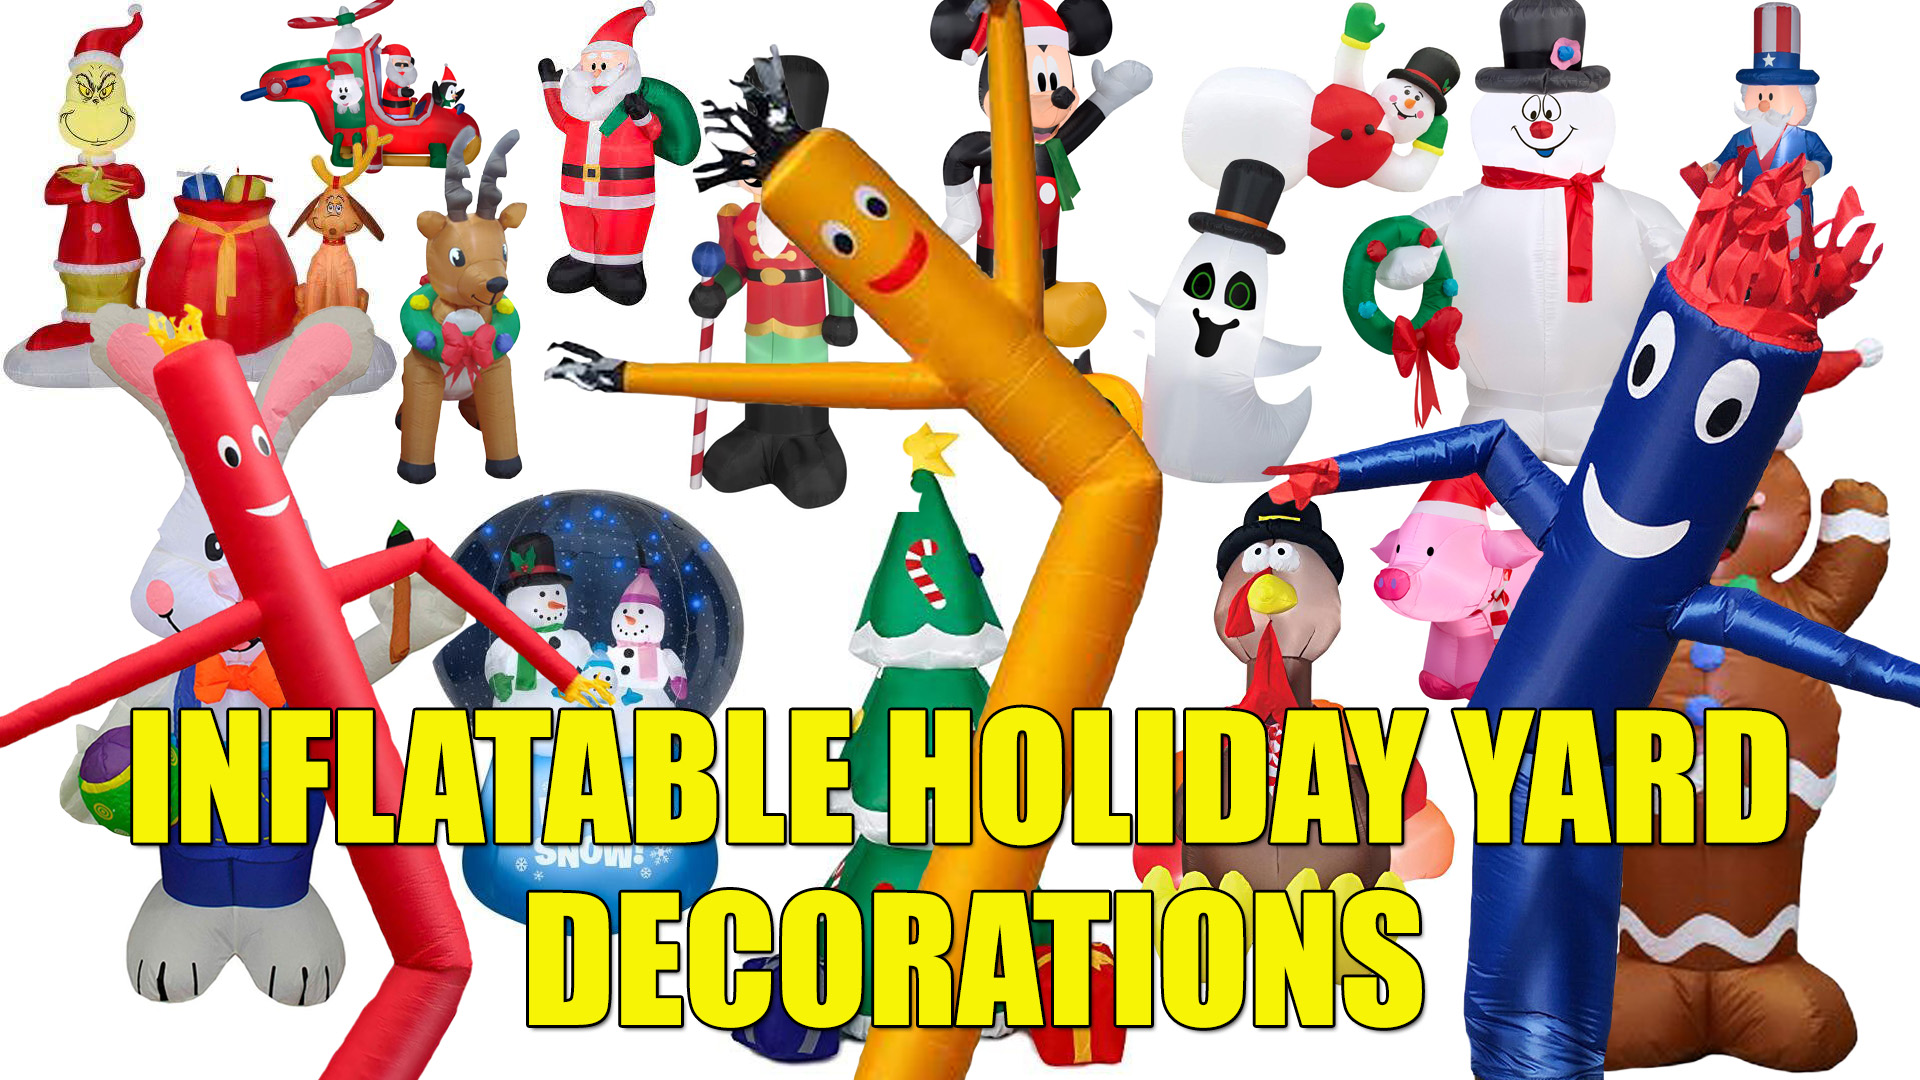 Inflatalble Holiday Yard Decorations